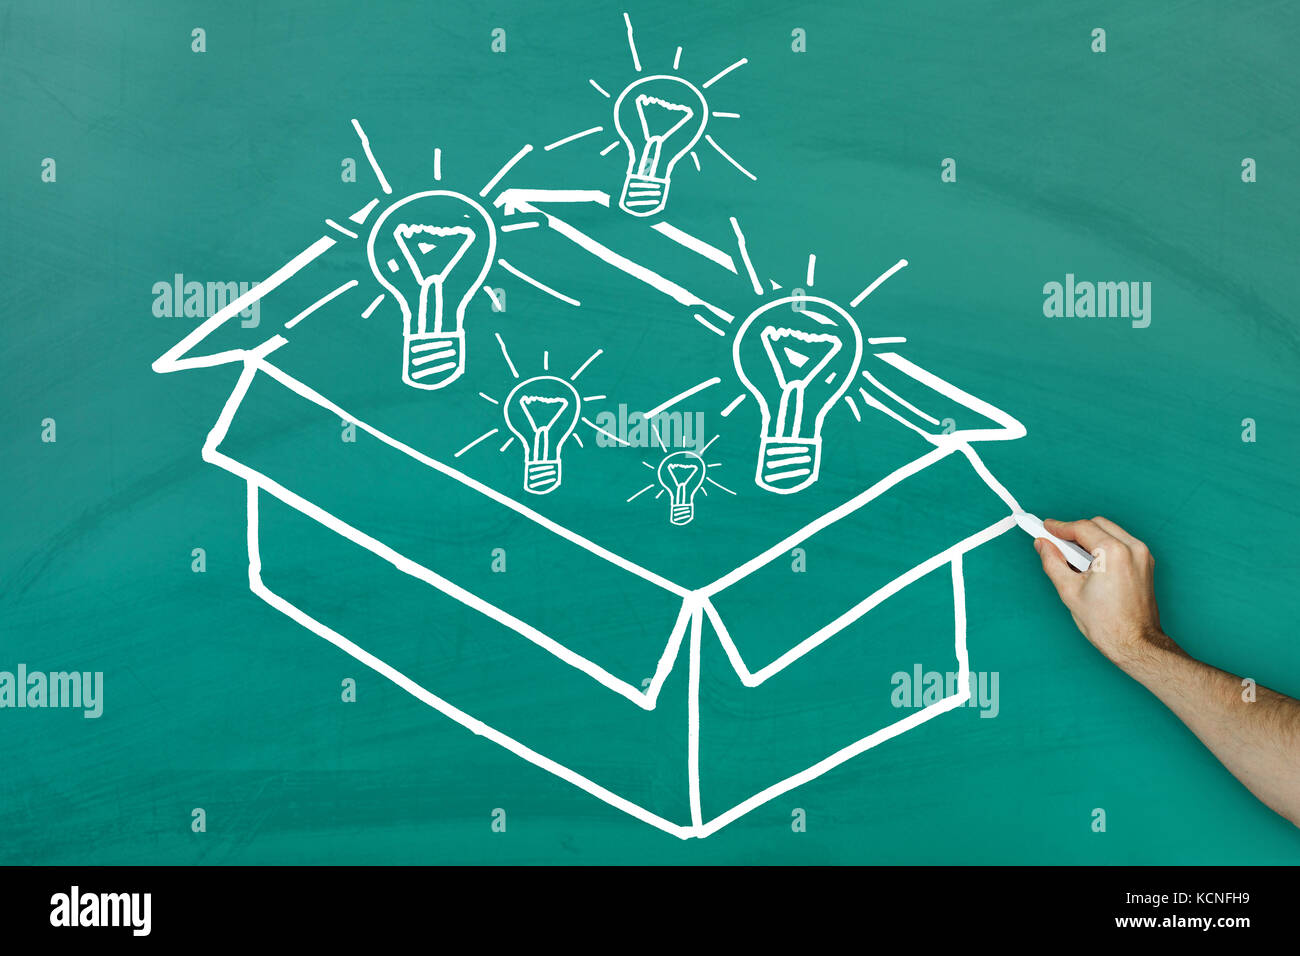 Ideas out of the box concept on green blackboard - Stock Image